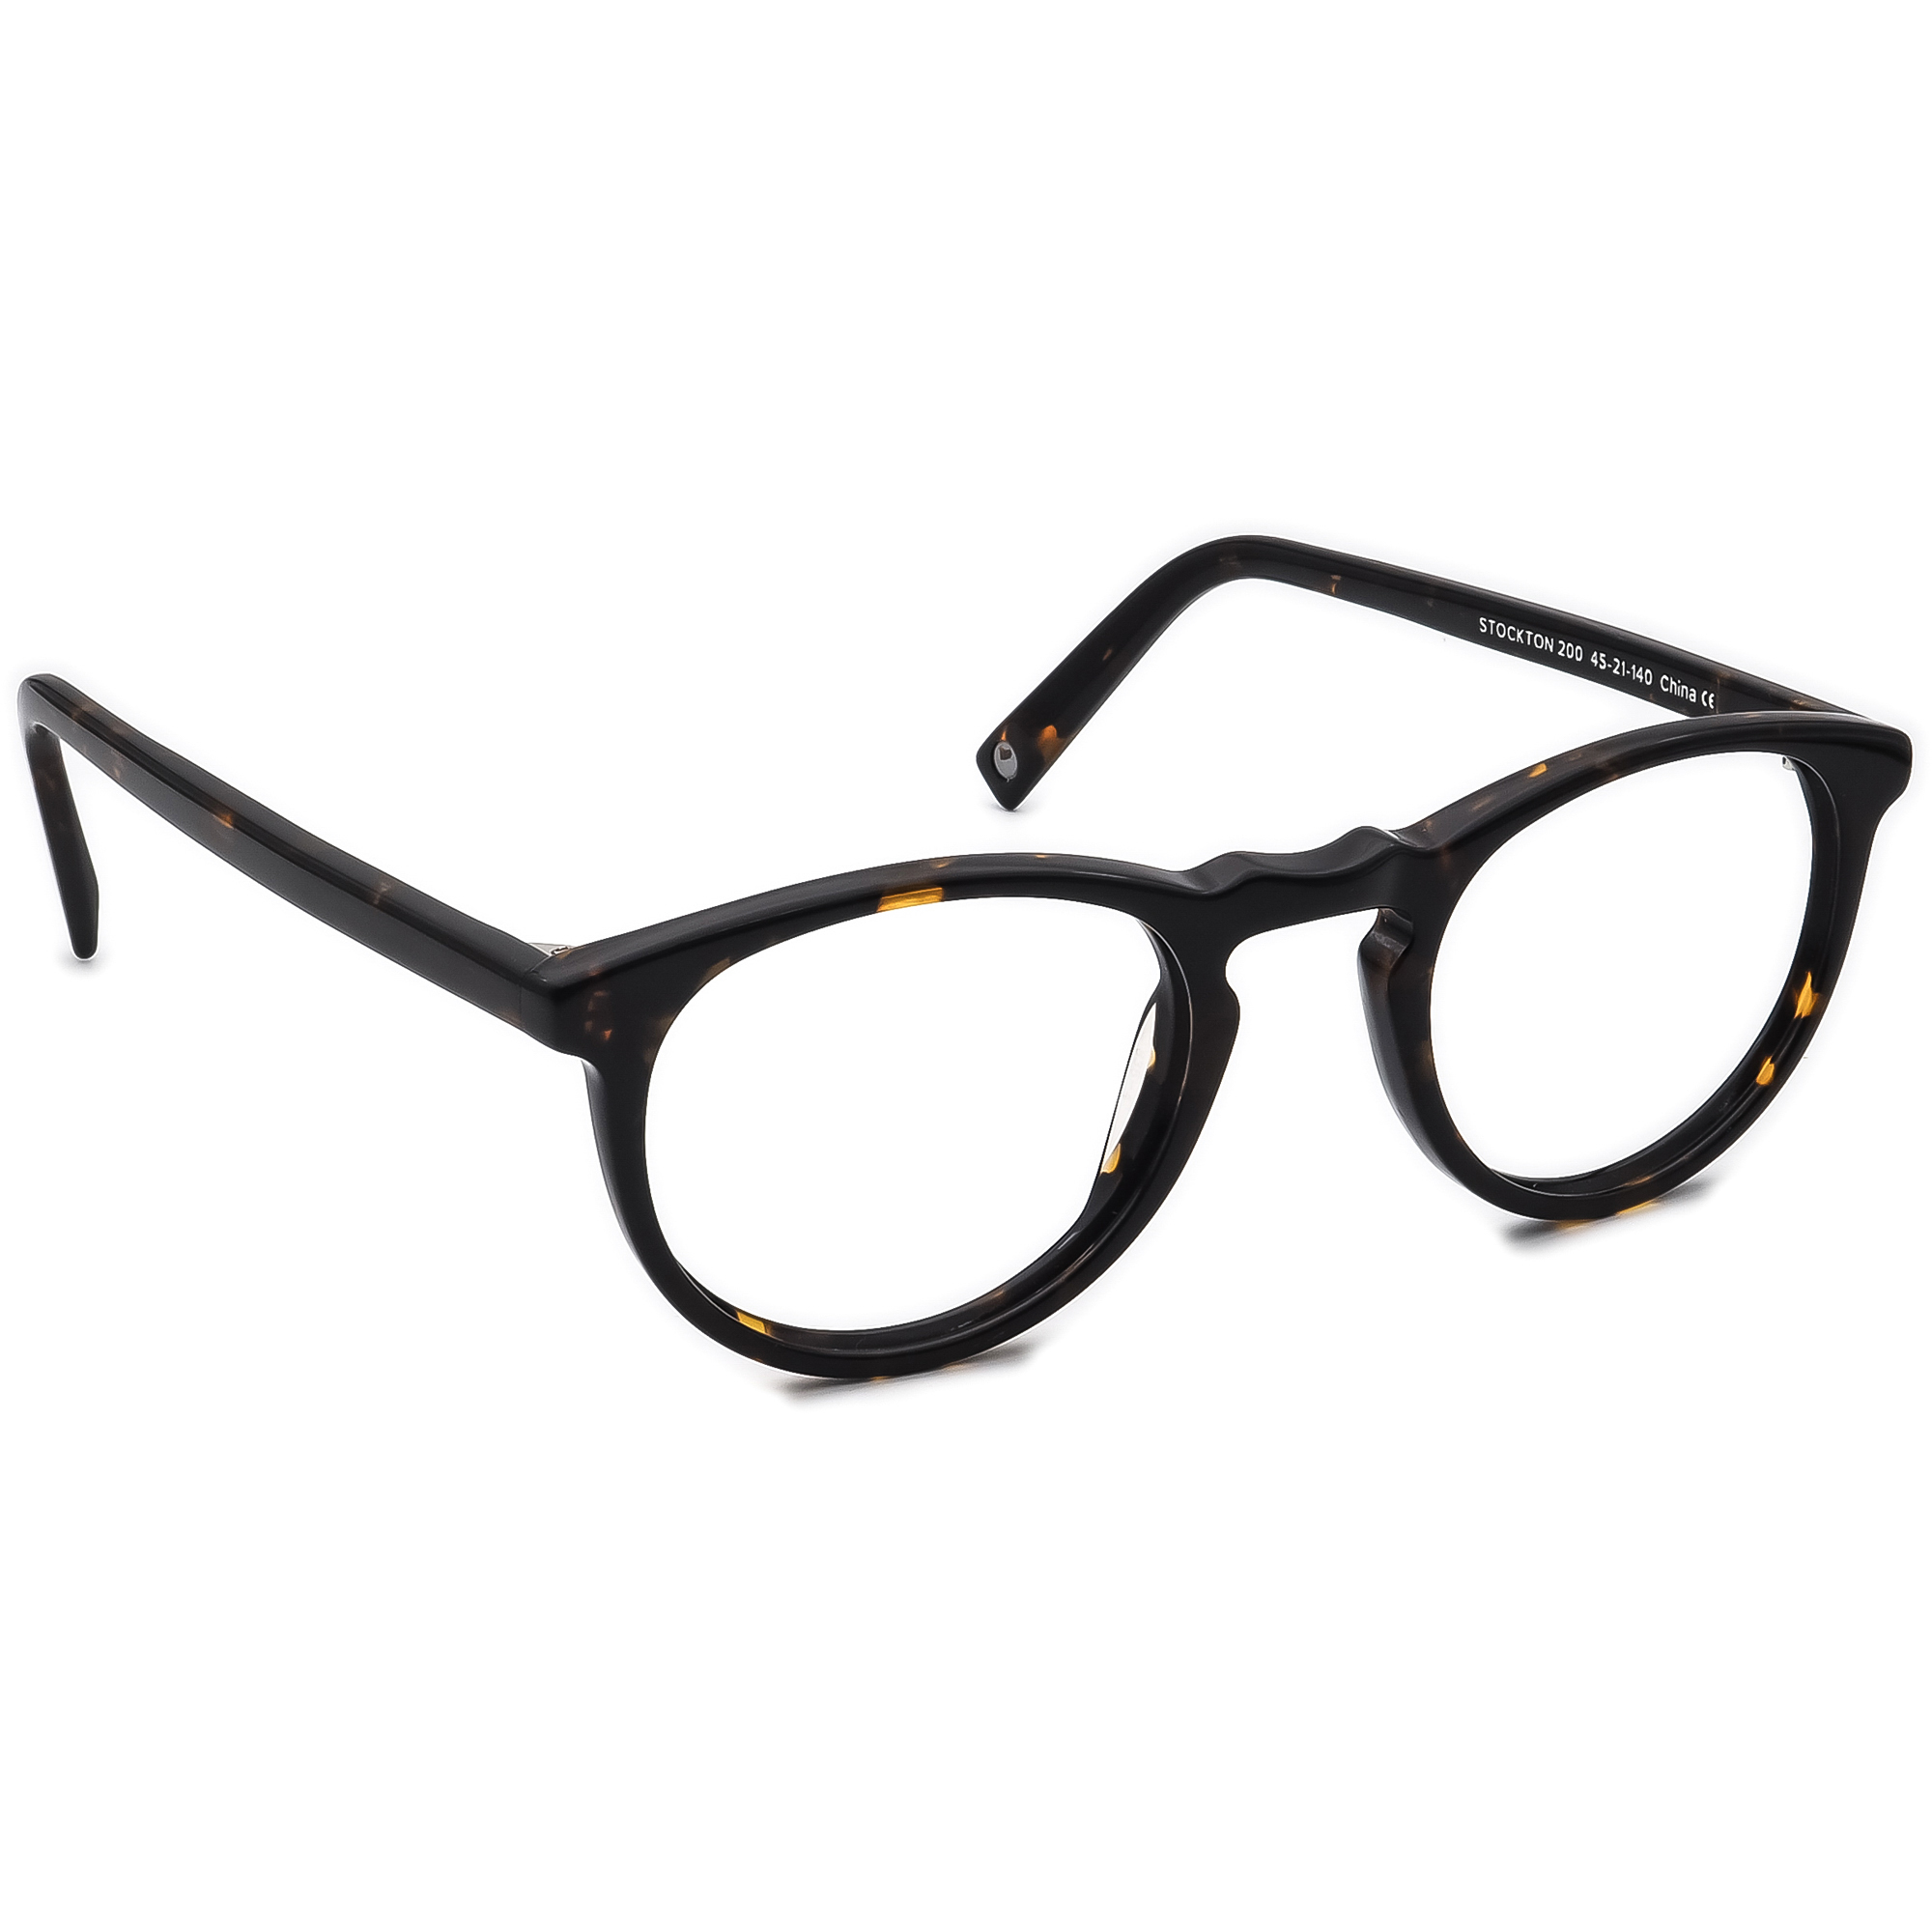 Warby Parker Stockton 200 Eyeglasses